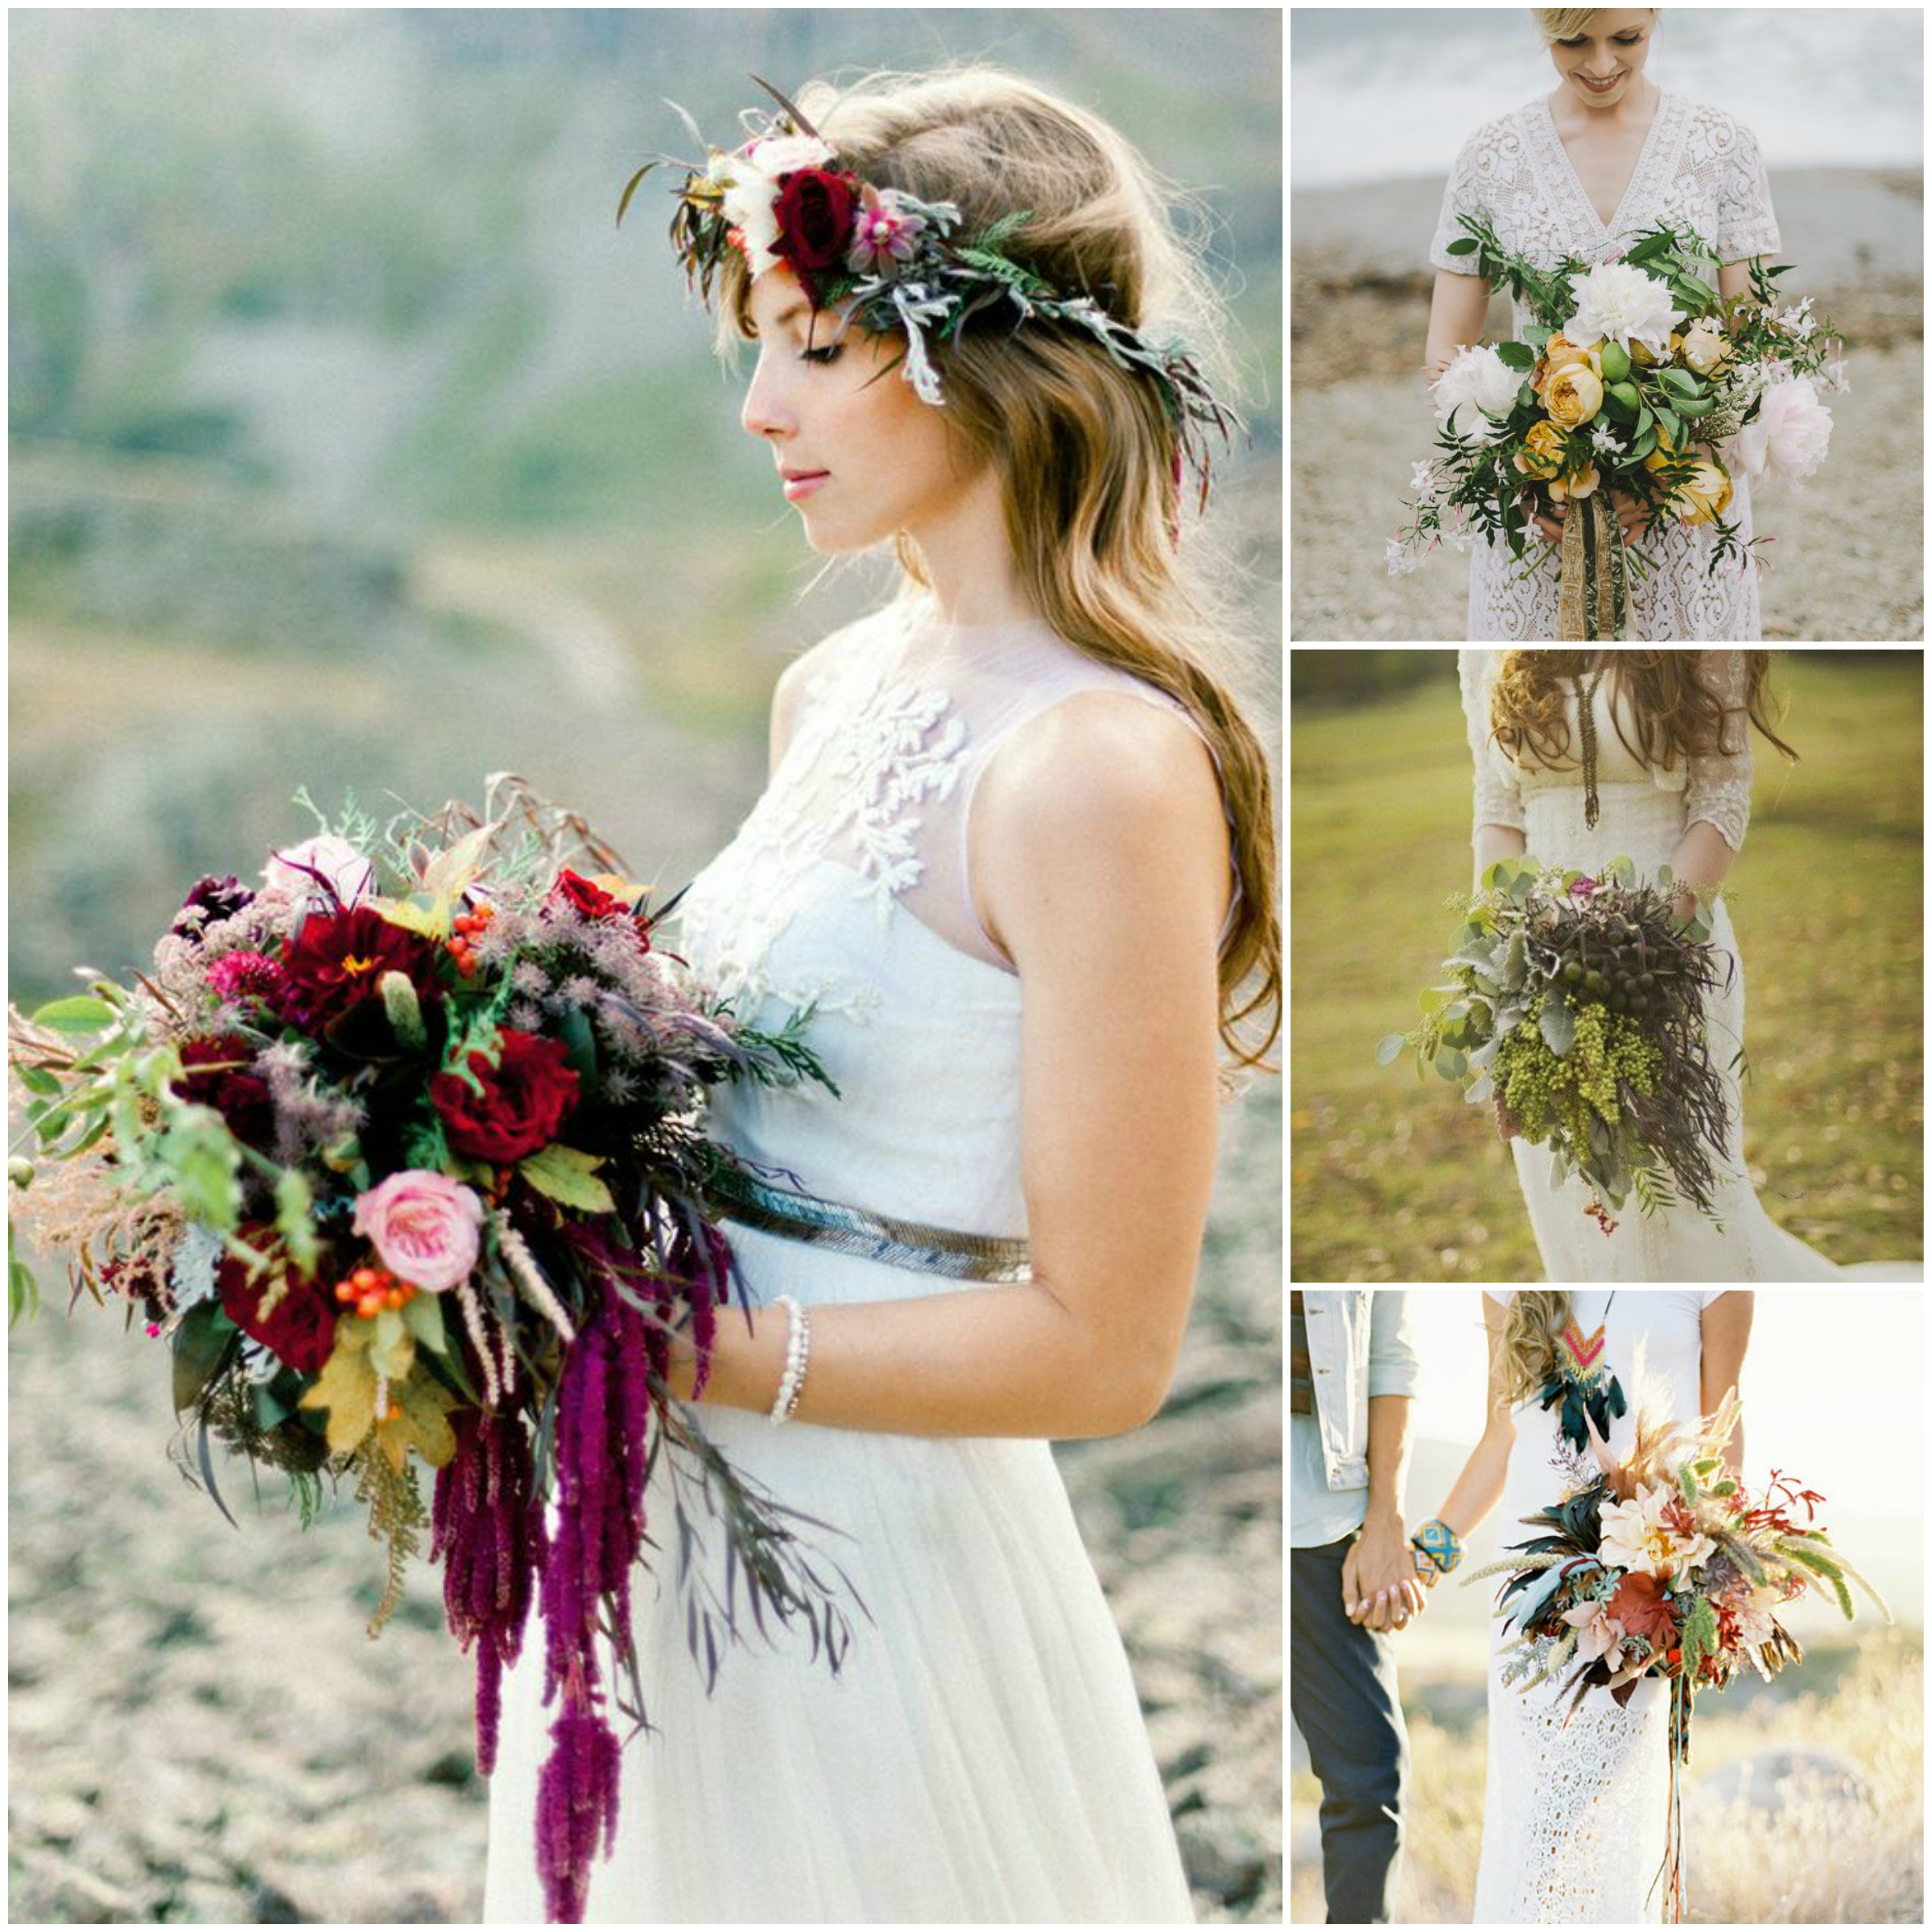 Wedding Inspirations: Eclectic And Eccentric